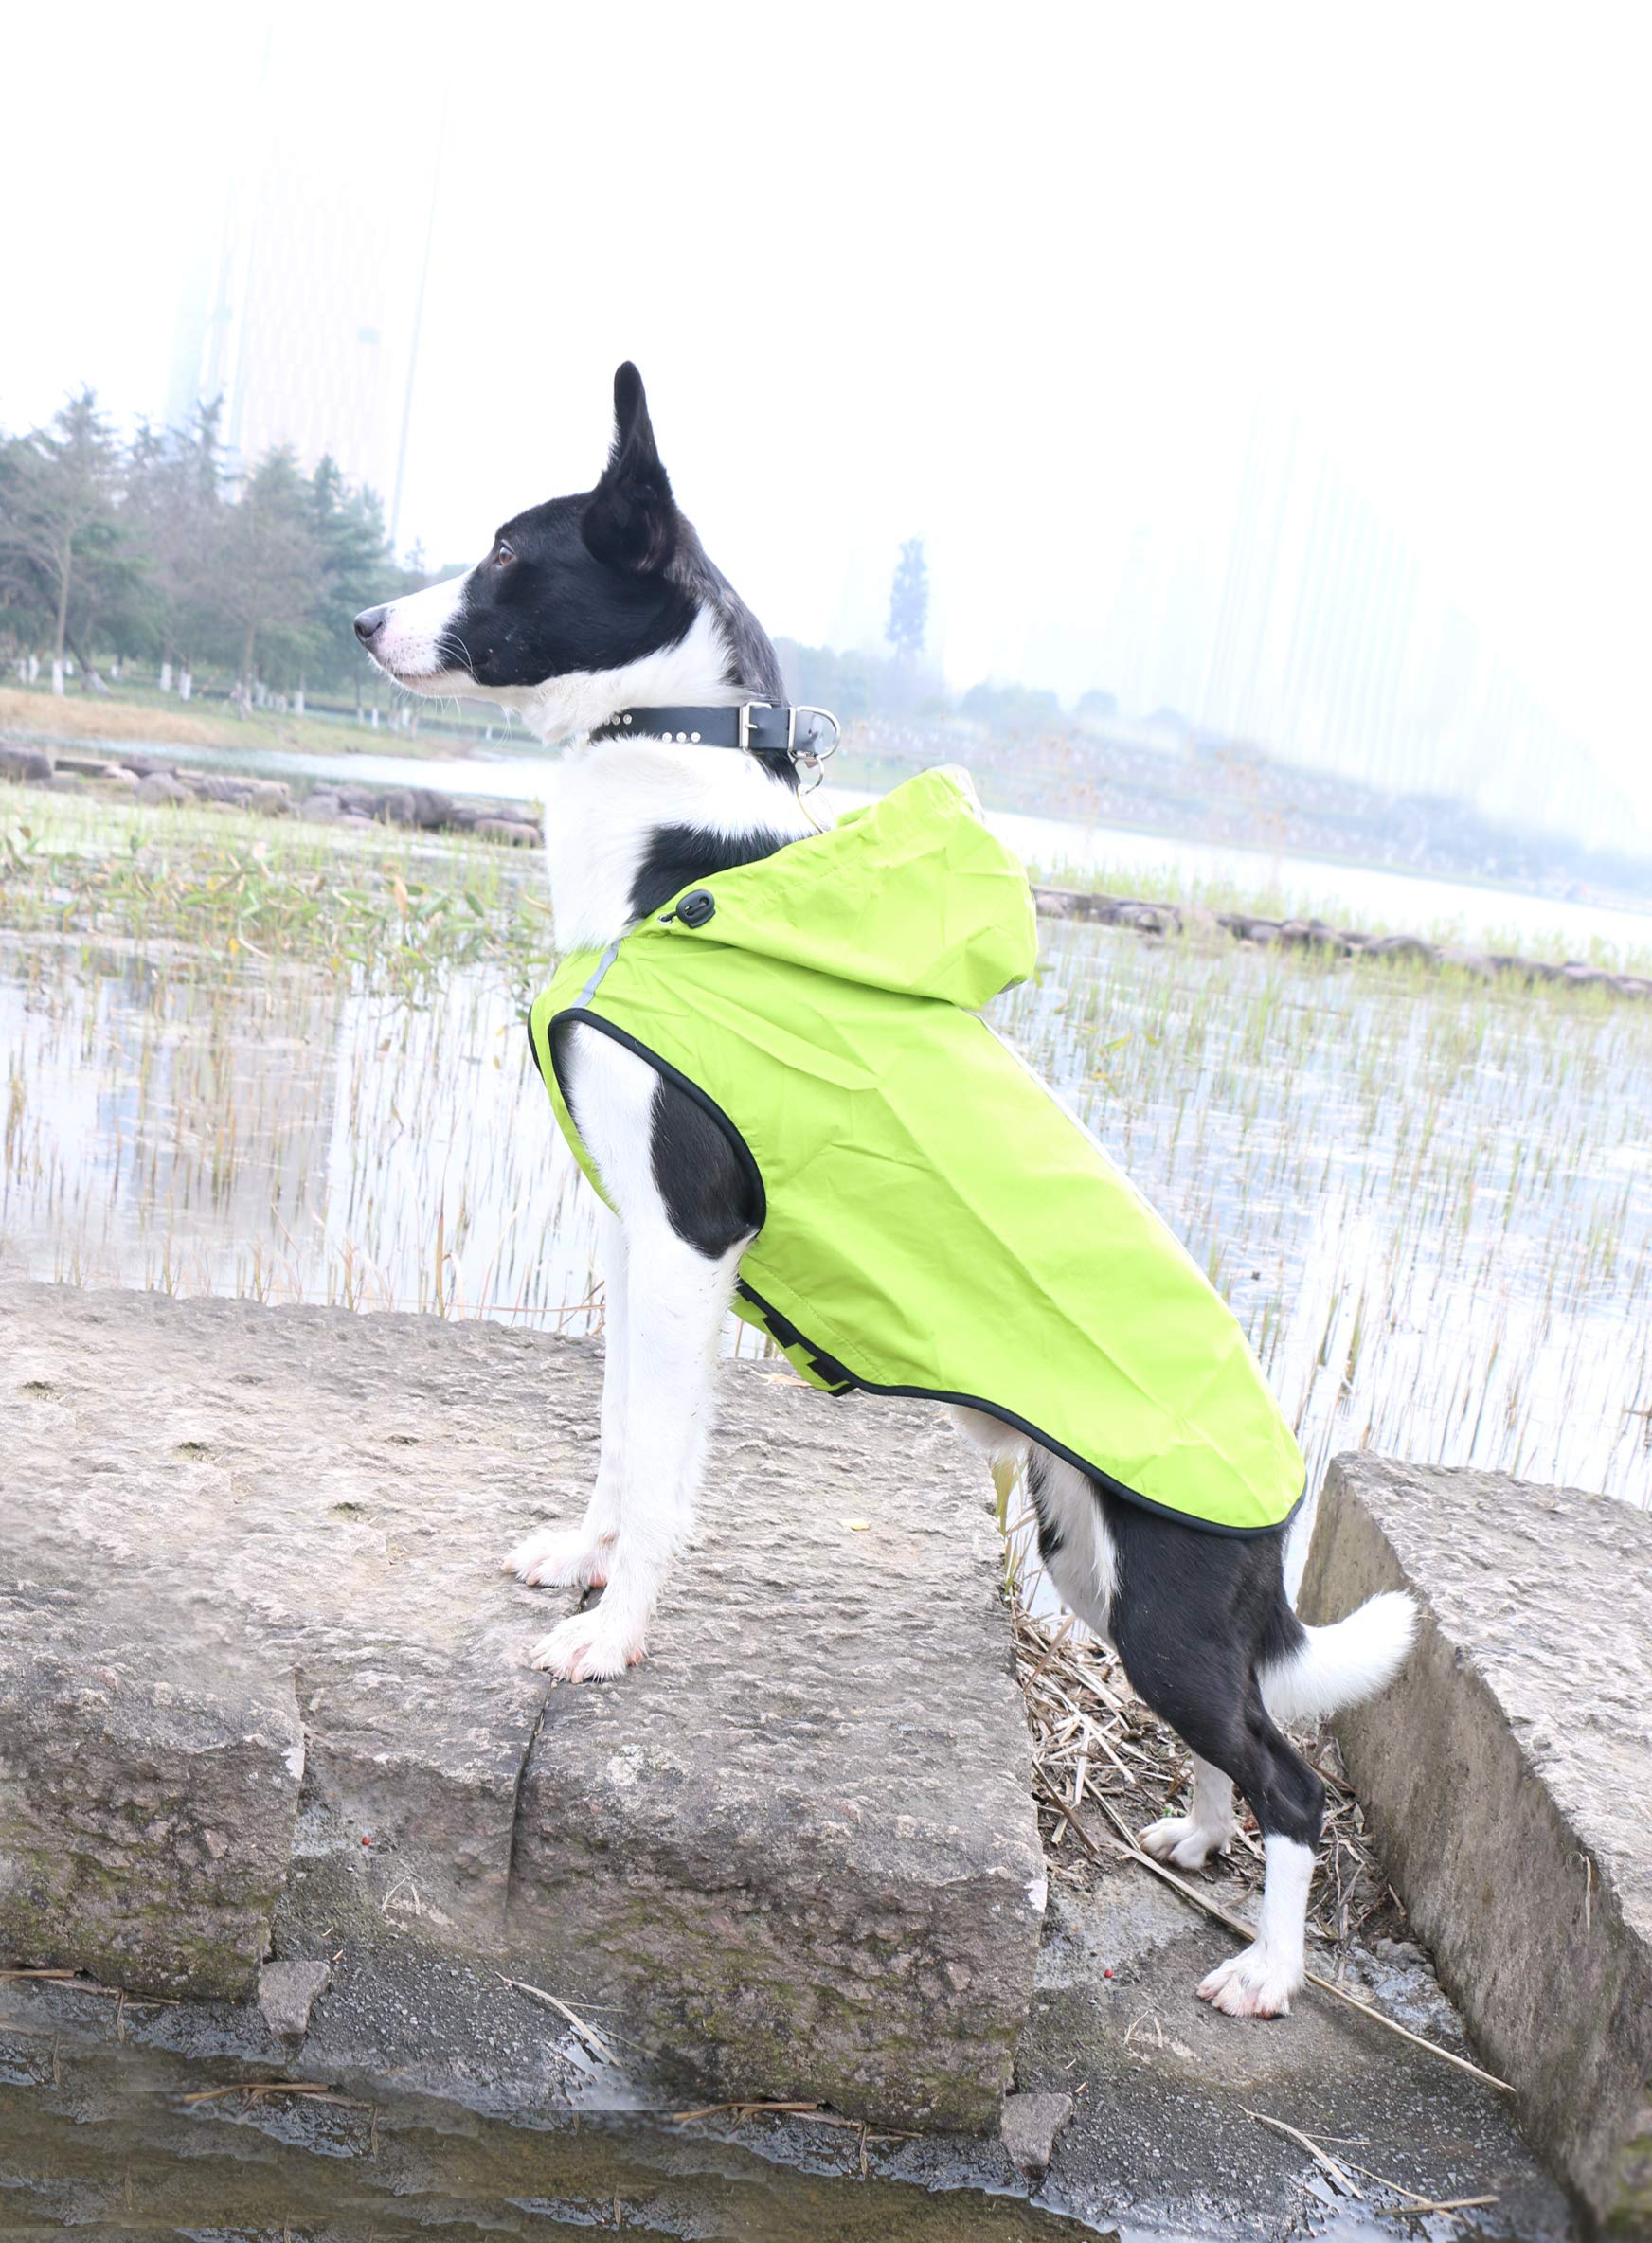 SENYEPETS Waterproof Dog Raincoat, Lightweight Packable Jacket with Reflective Stripes for High Visibility Safety, Adjustable Hood Poncho for Small Medium Large Dogs (XXL, Green) by SENYEPETS